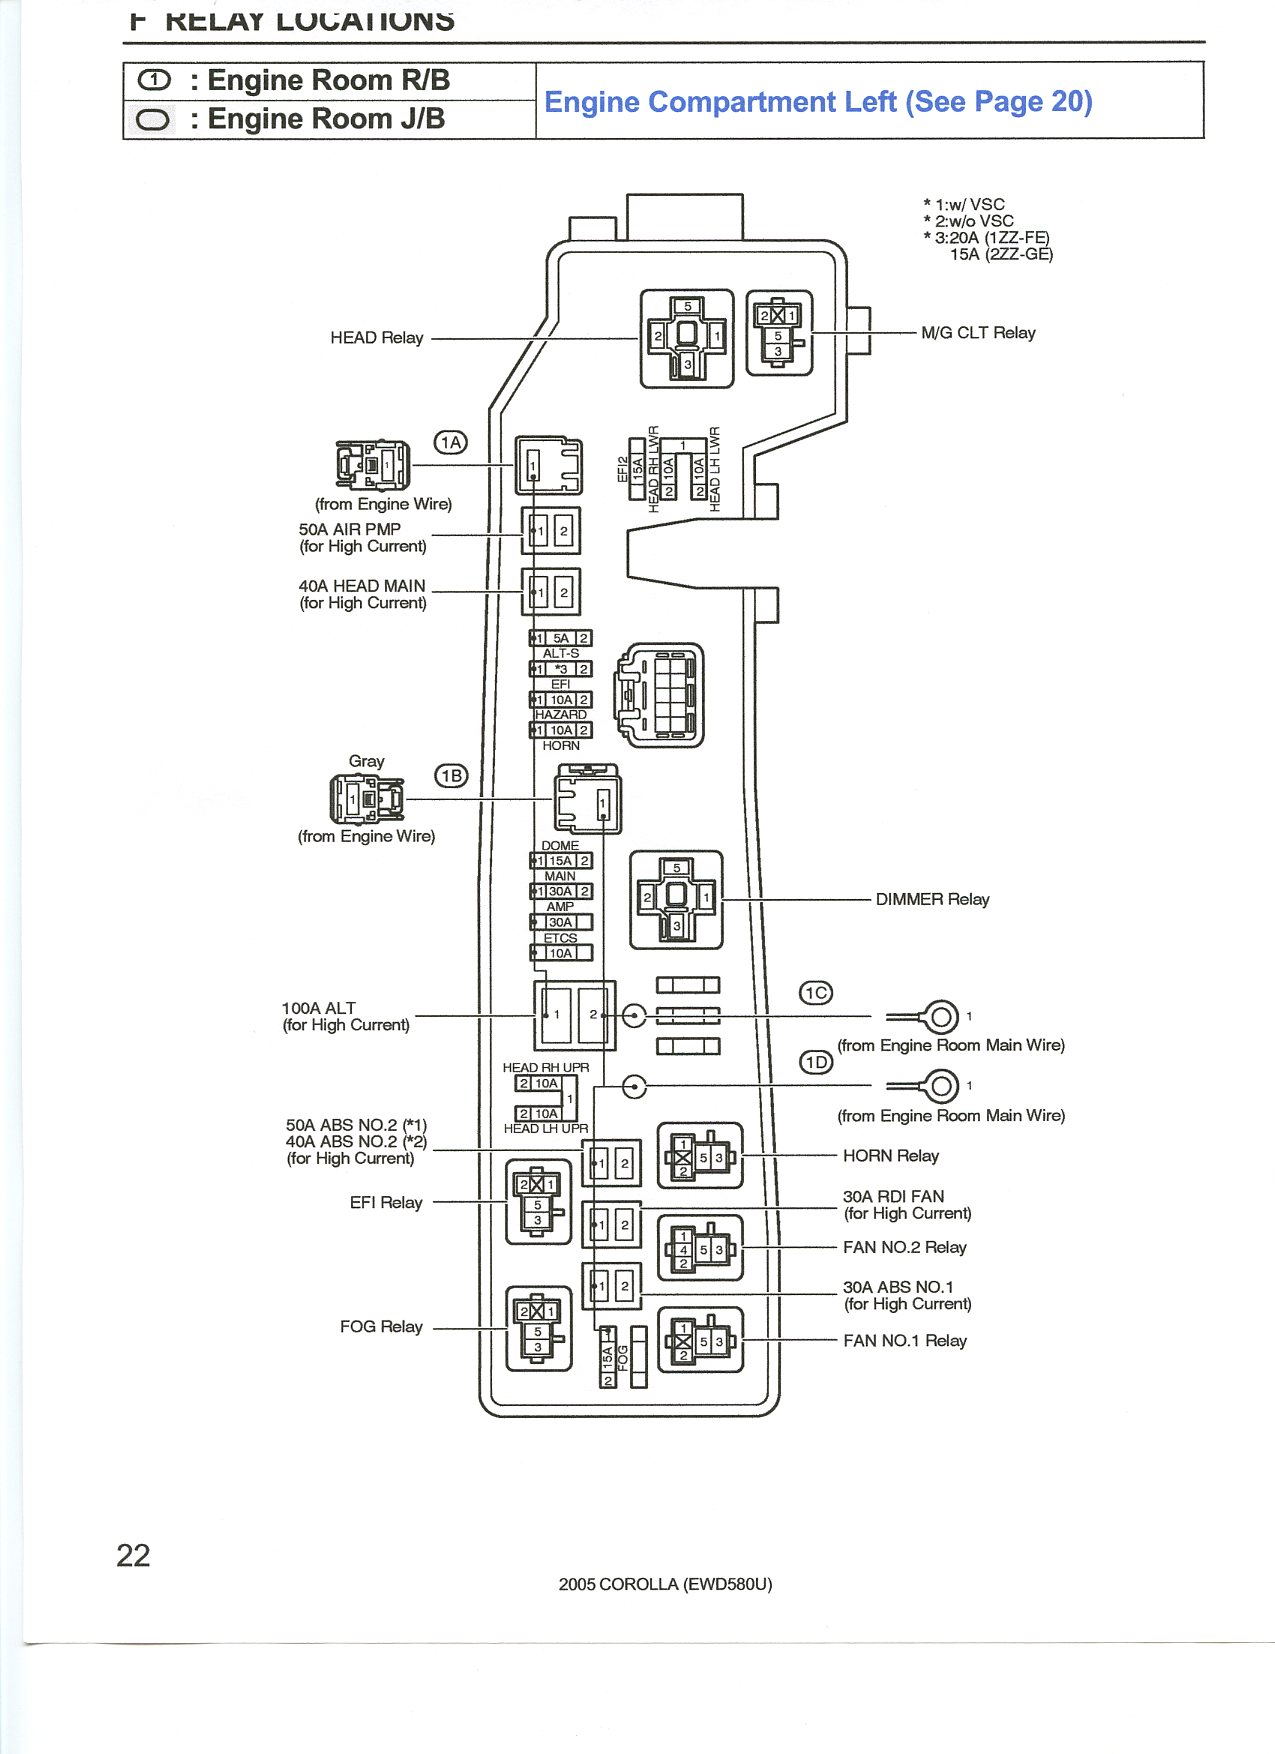 Toyota Sienna Fuse Box Diagram